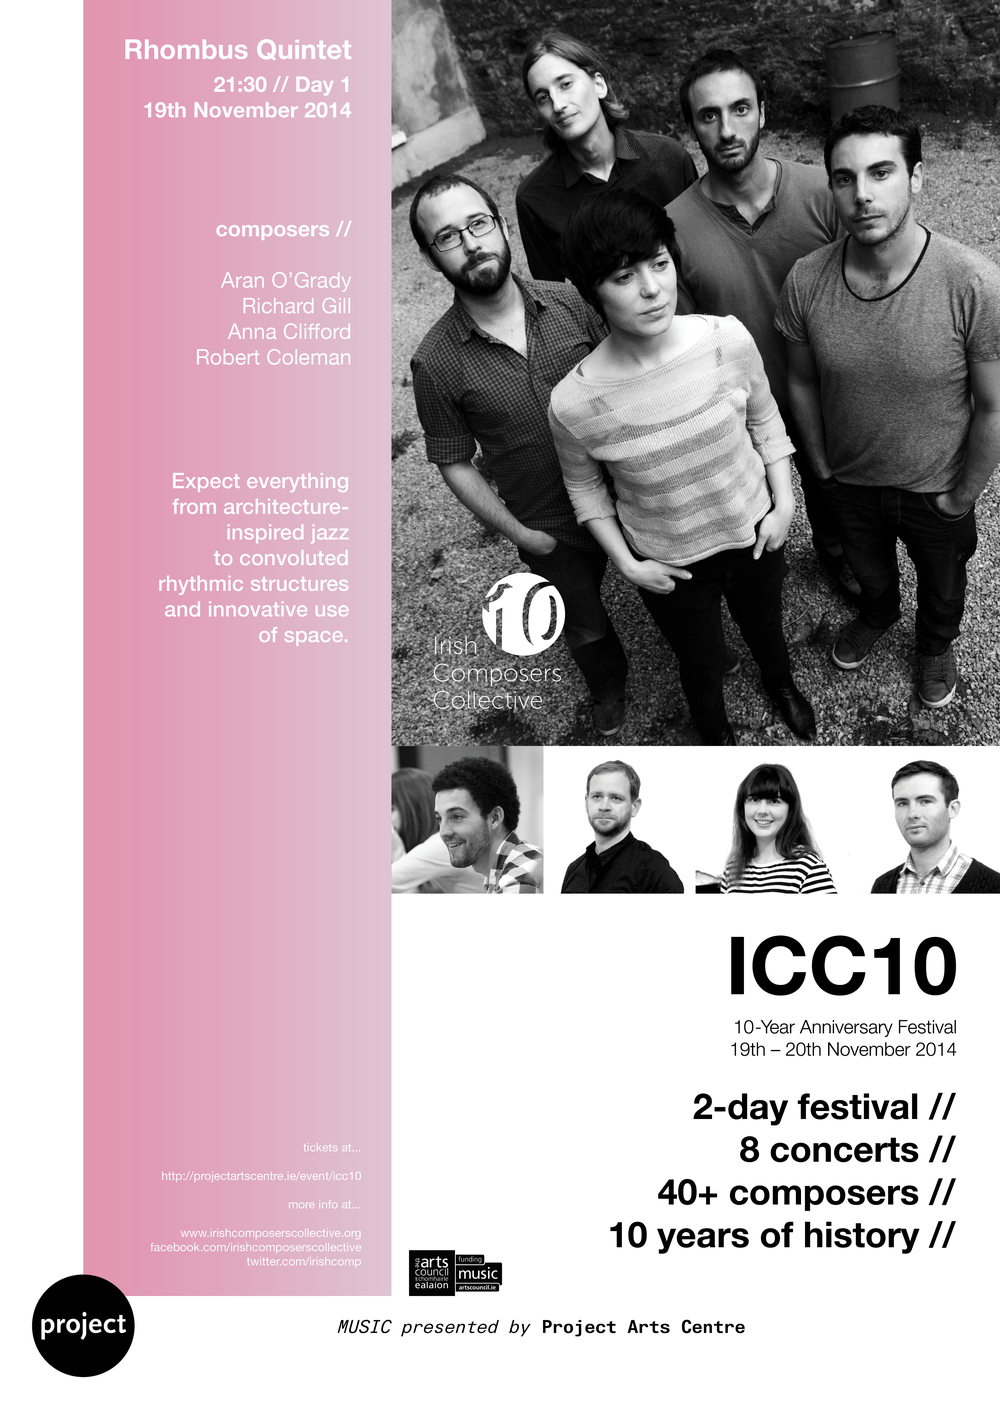 icc10 a3 poster_Rhombus.png